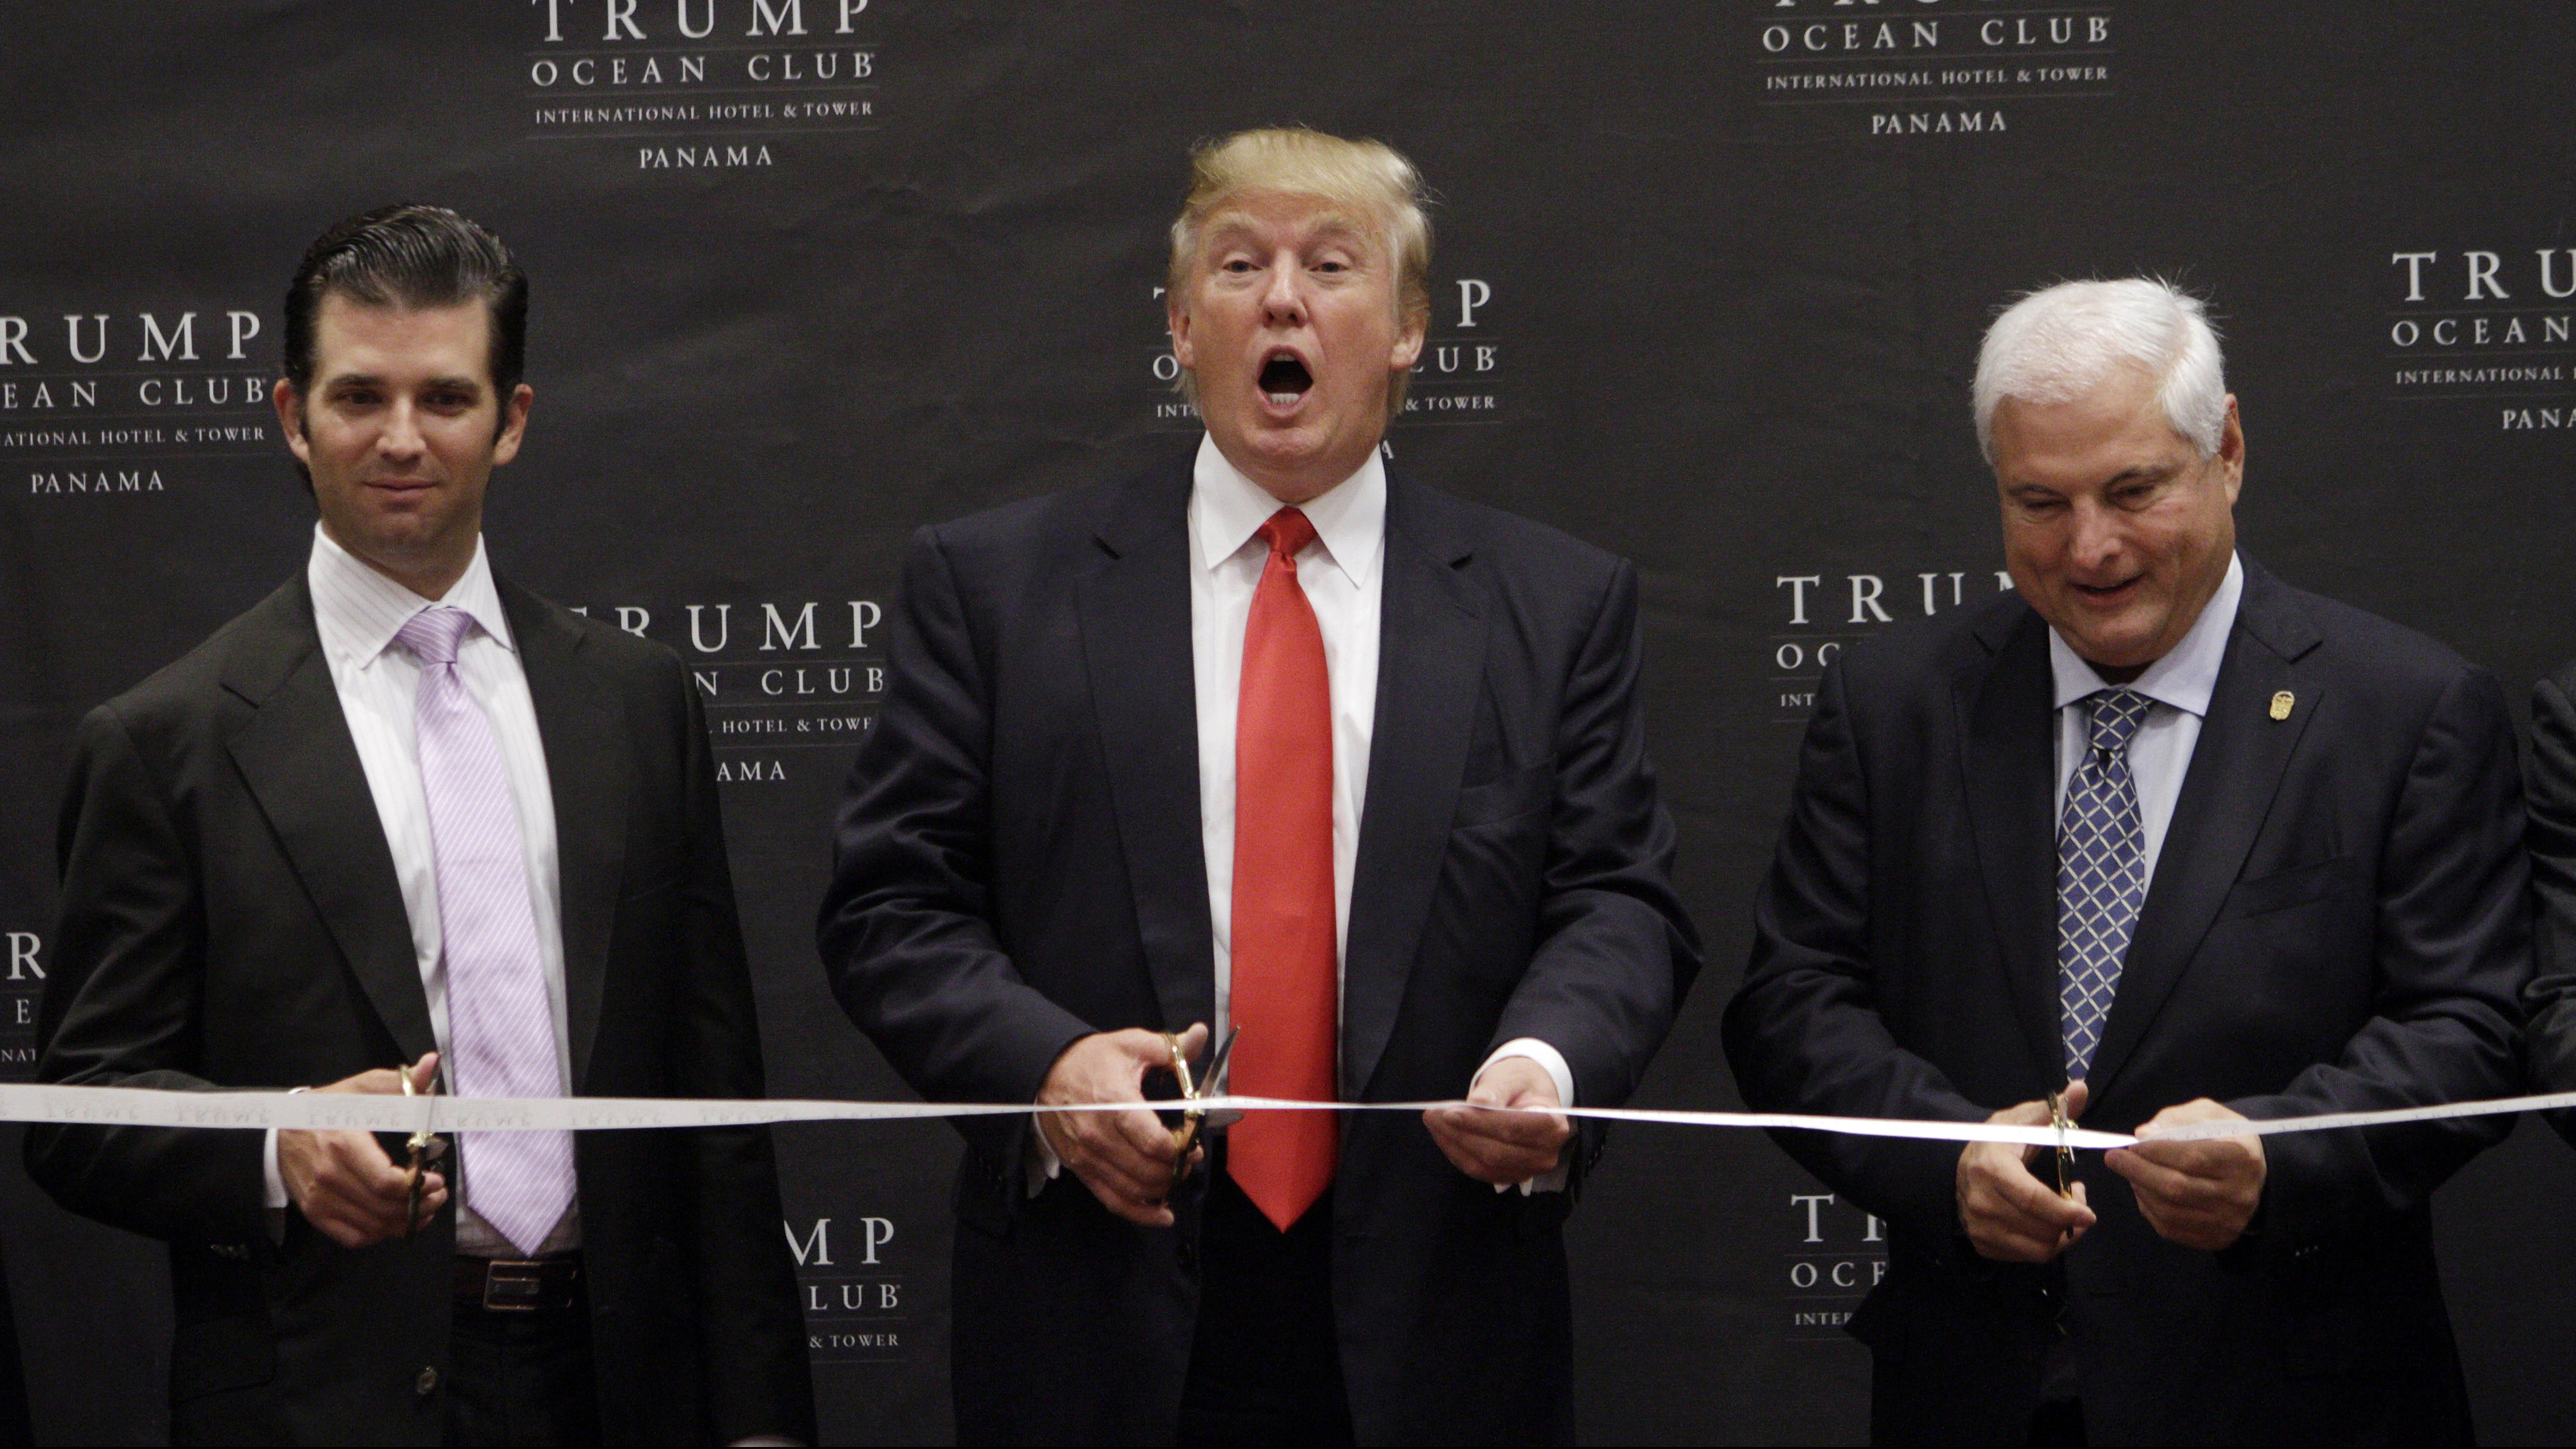 Trump and his son Donald Jr. open the hotel alongside Panamas president in 2011.